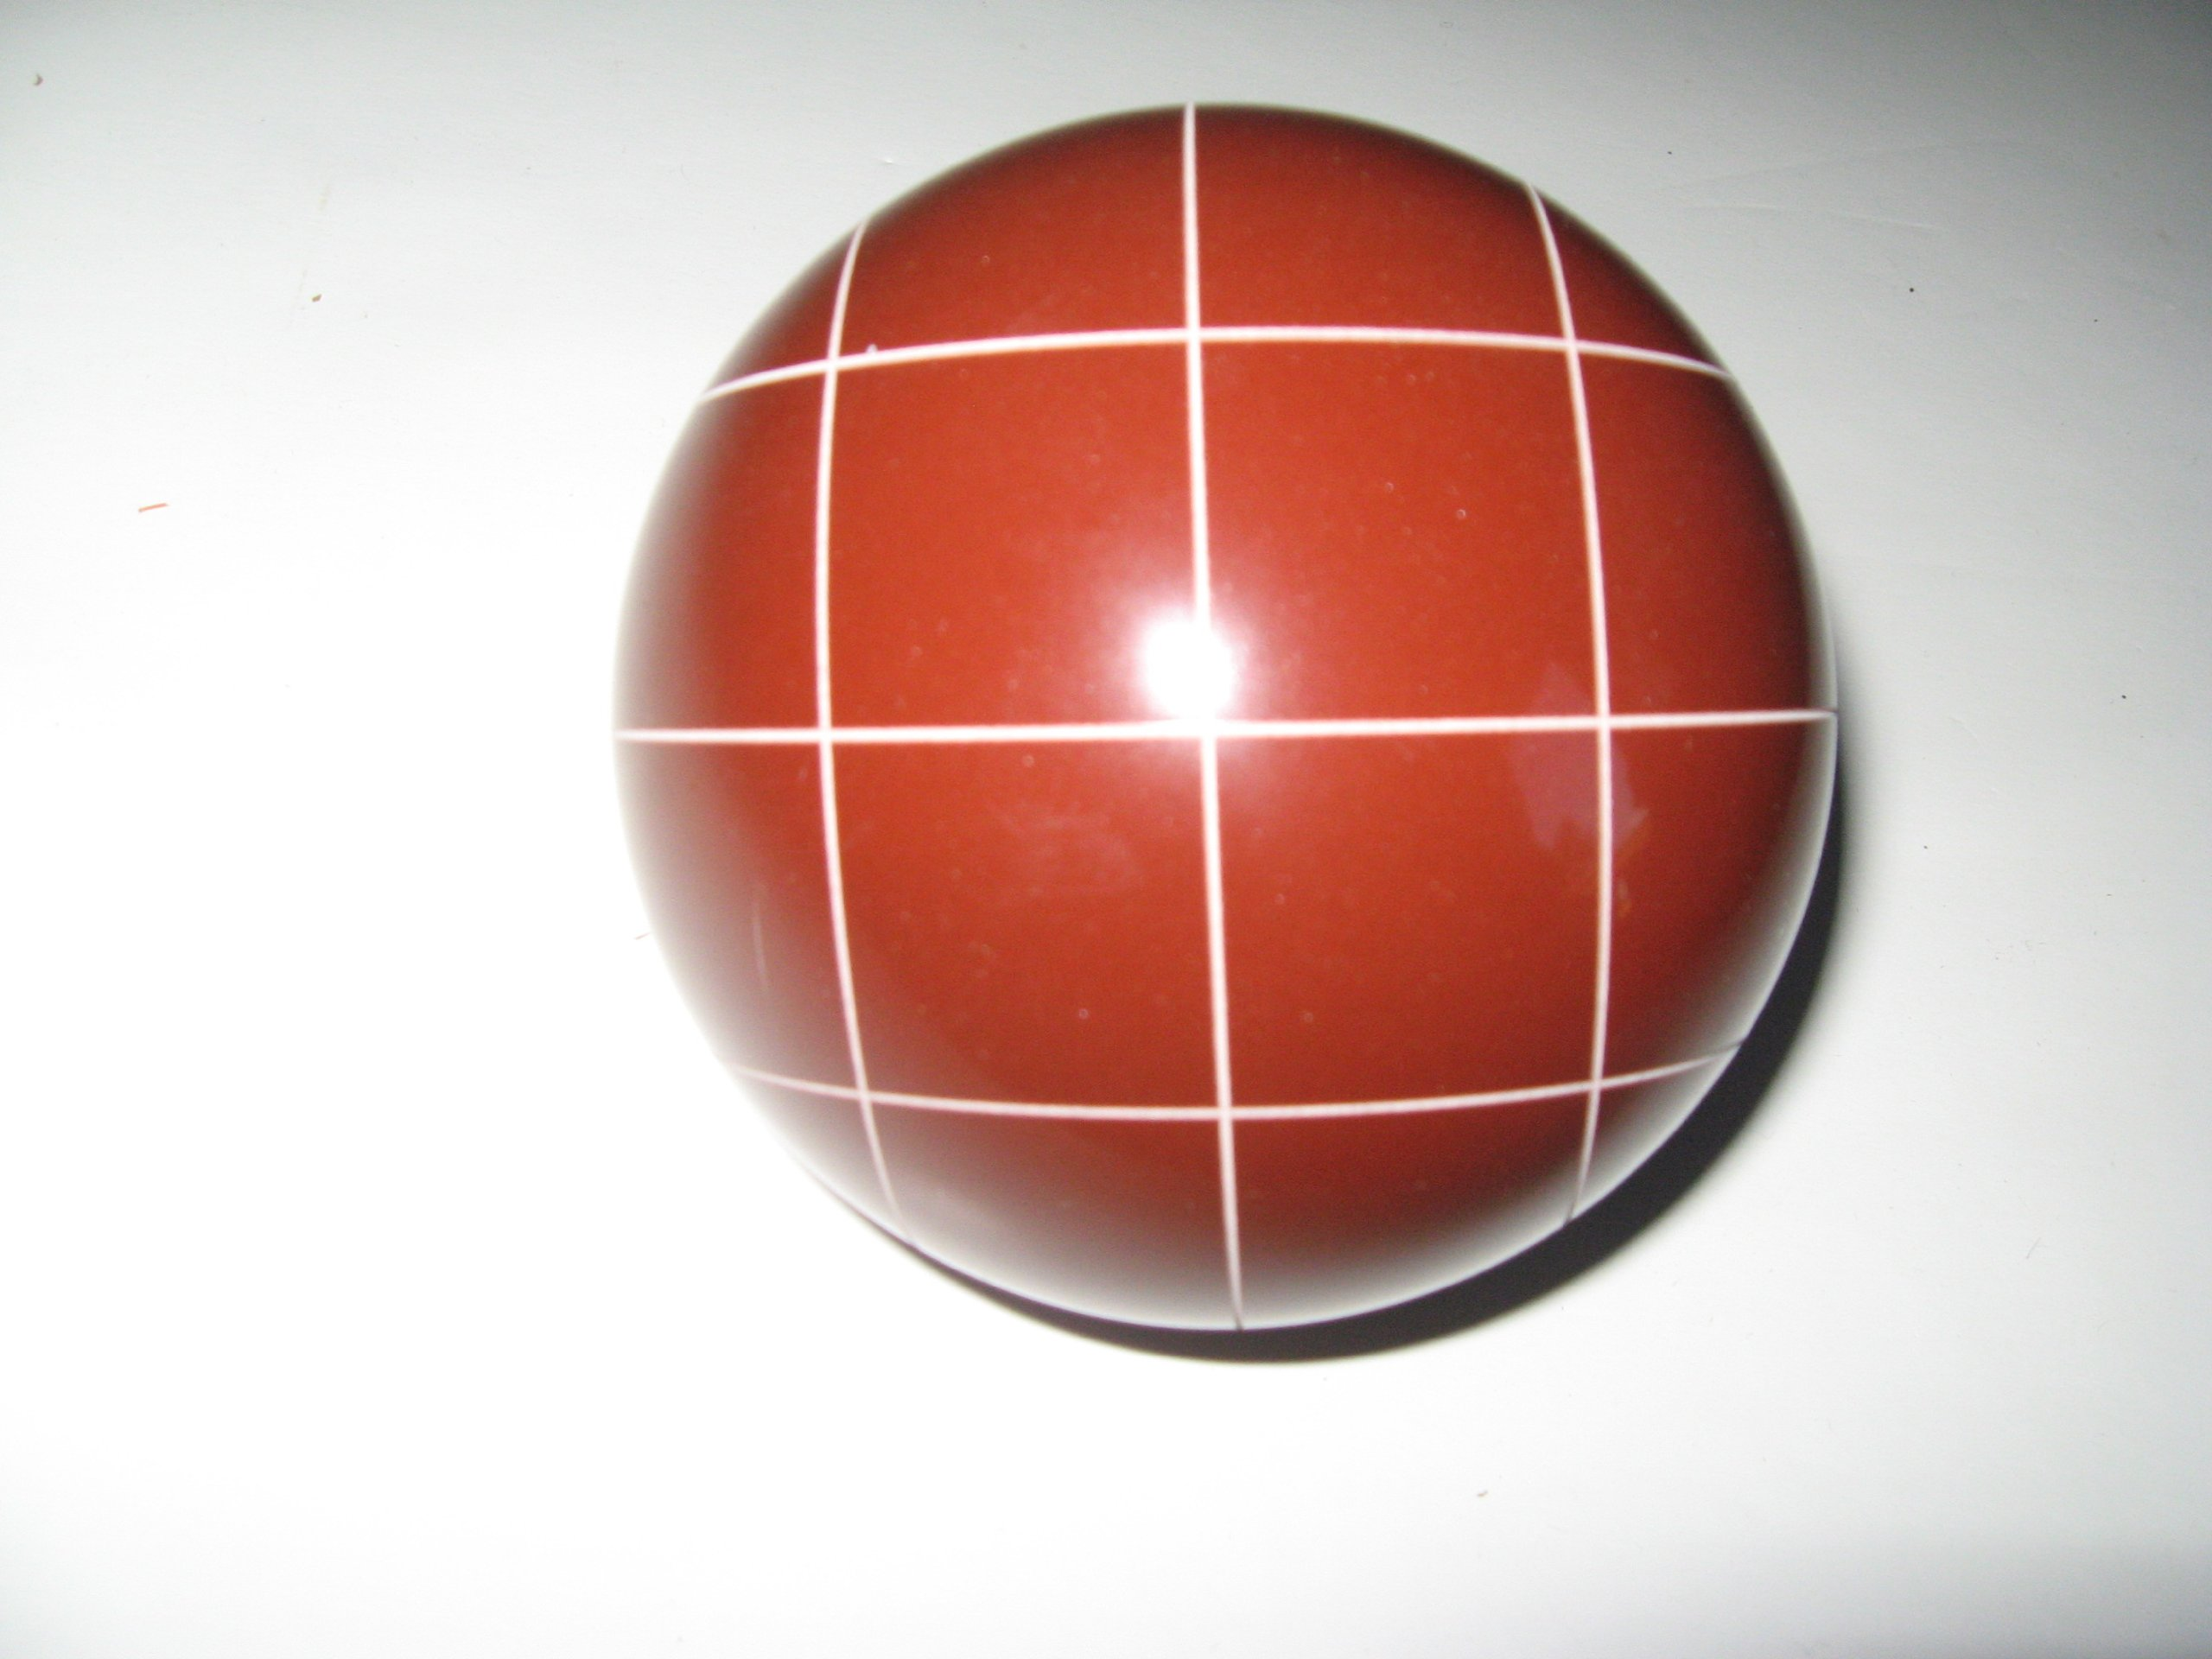 Epco Replacement Bocce Ball with Criss Crossed stripes - single red 107mm